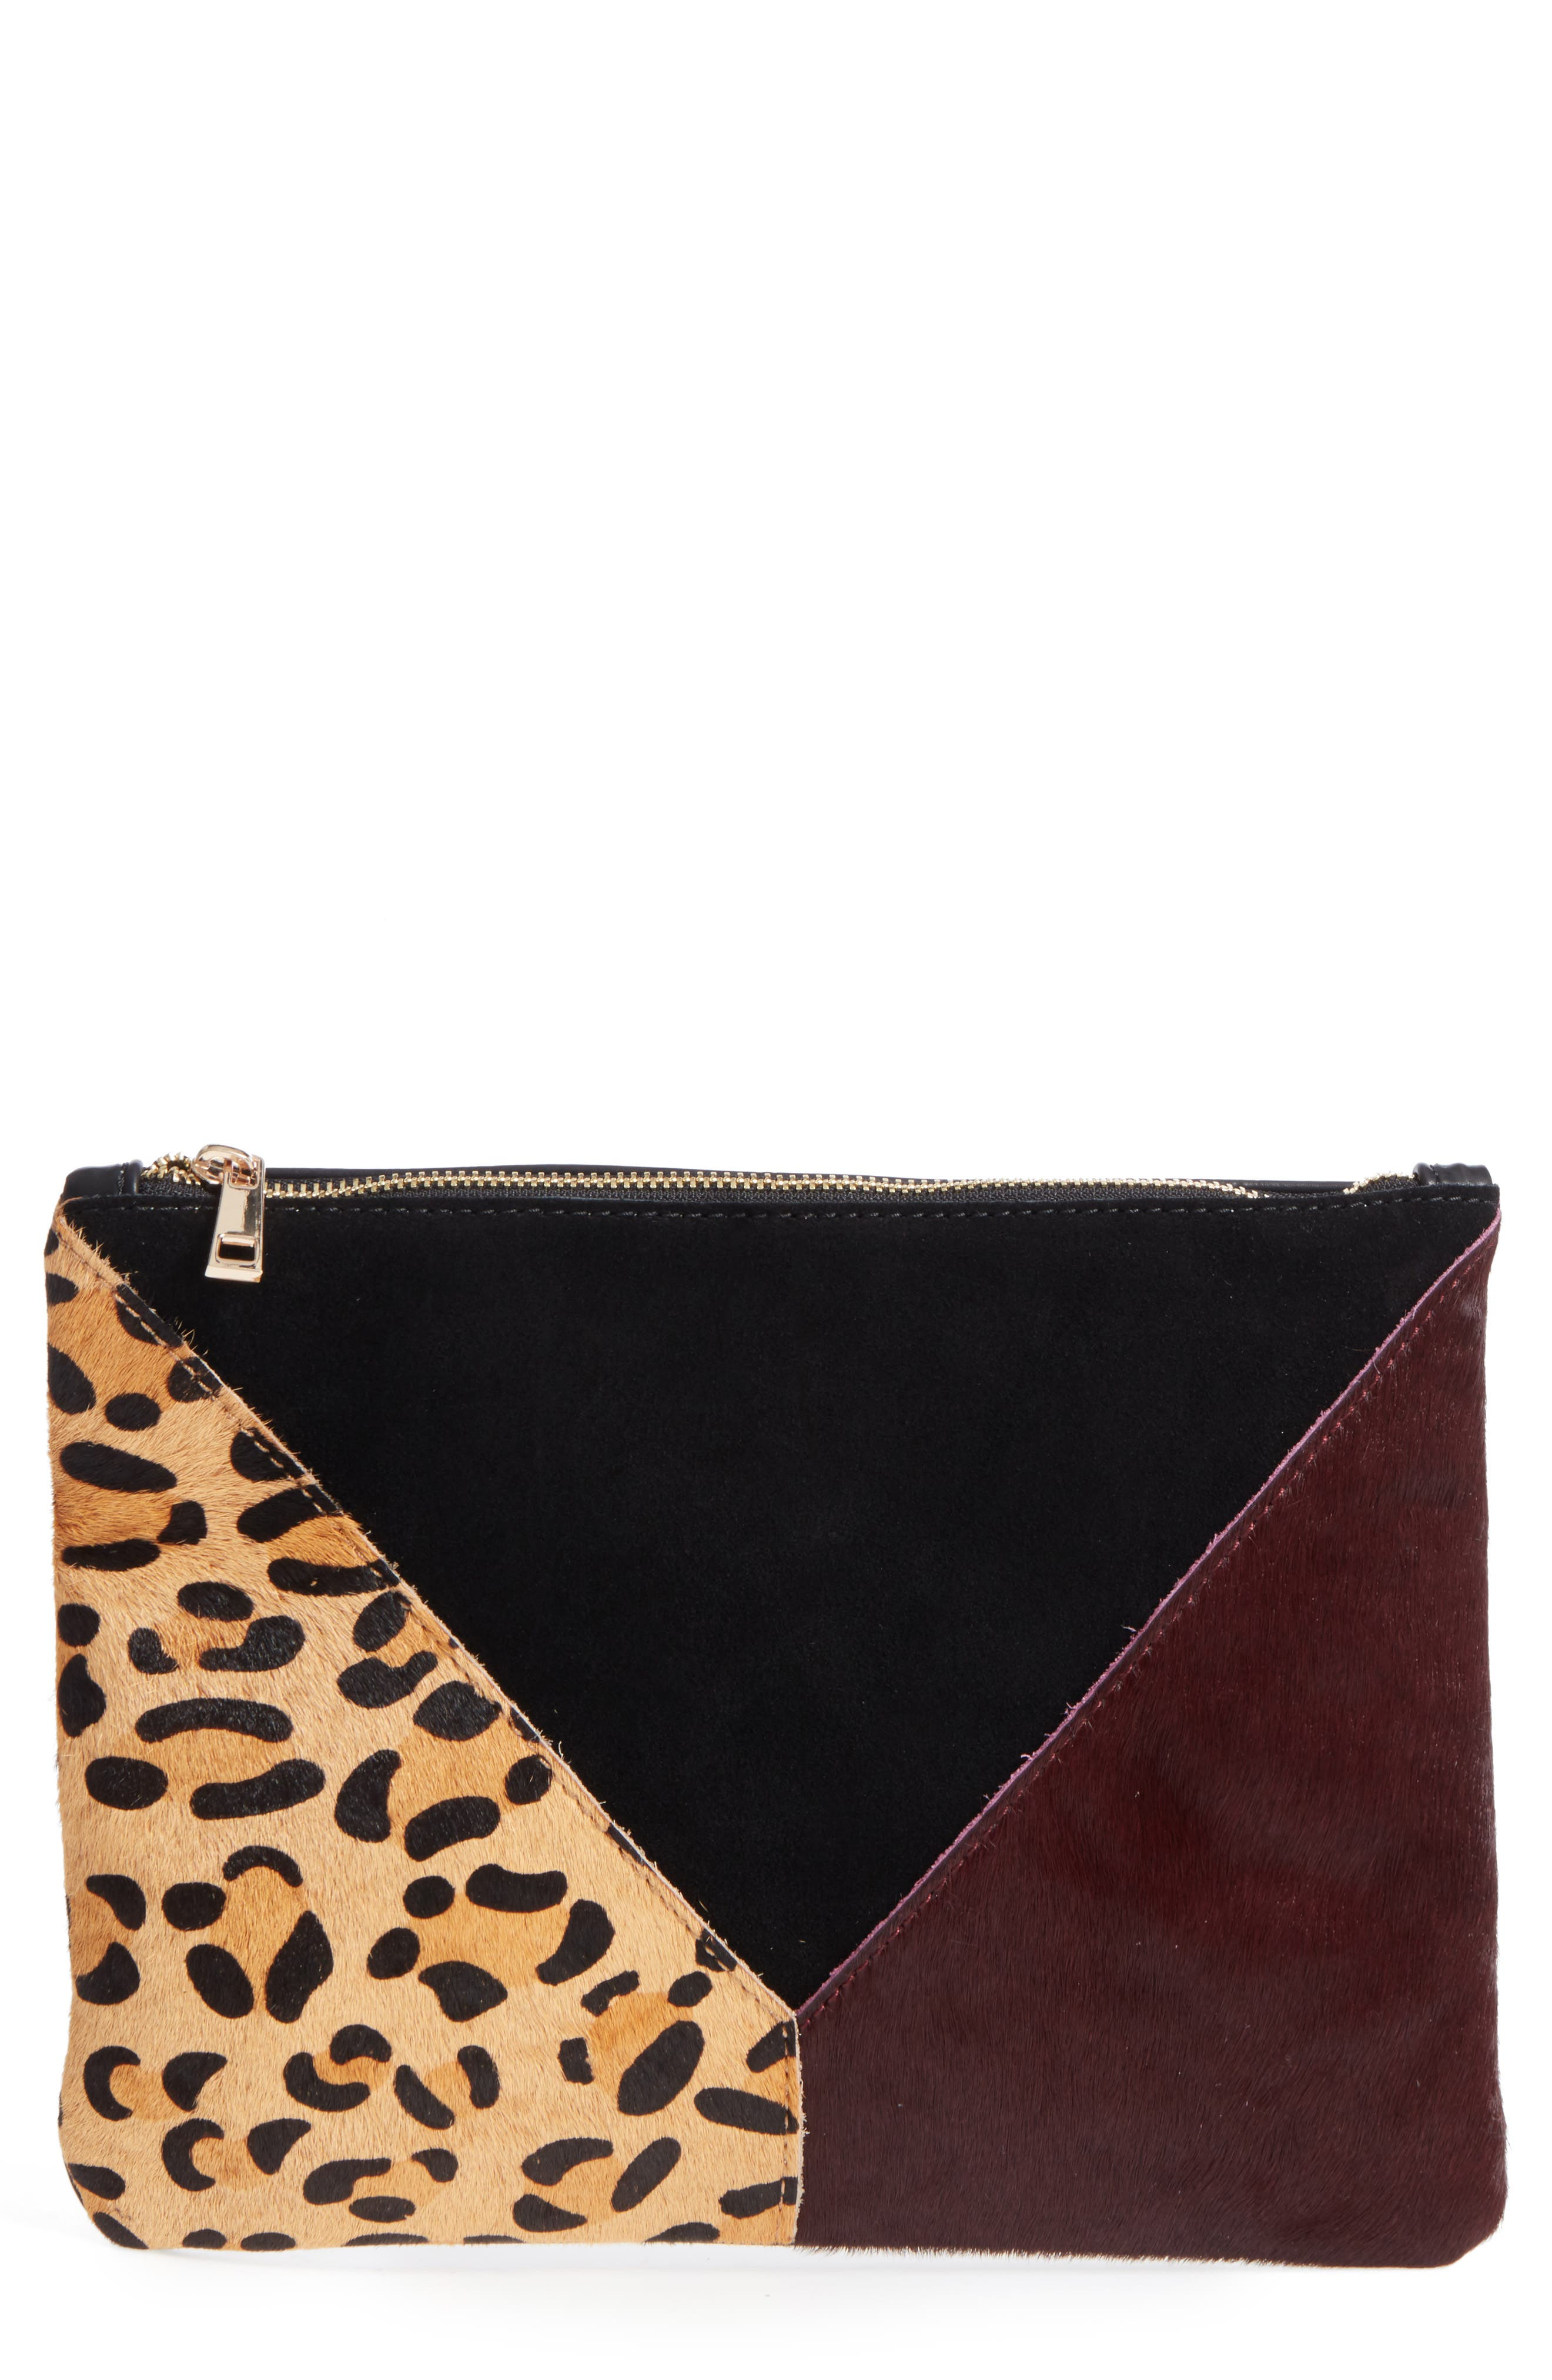 Alternate Image 1 Selected - Sole Society Shailey Patchwork Genuine Calf Hair Clutch